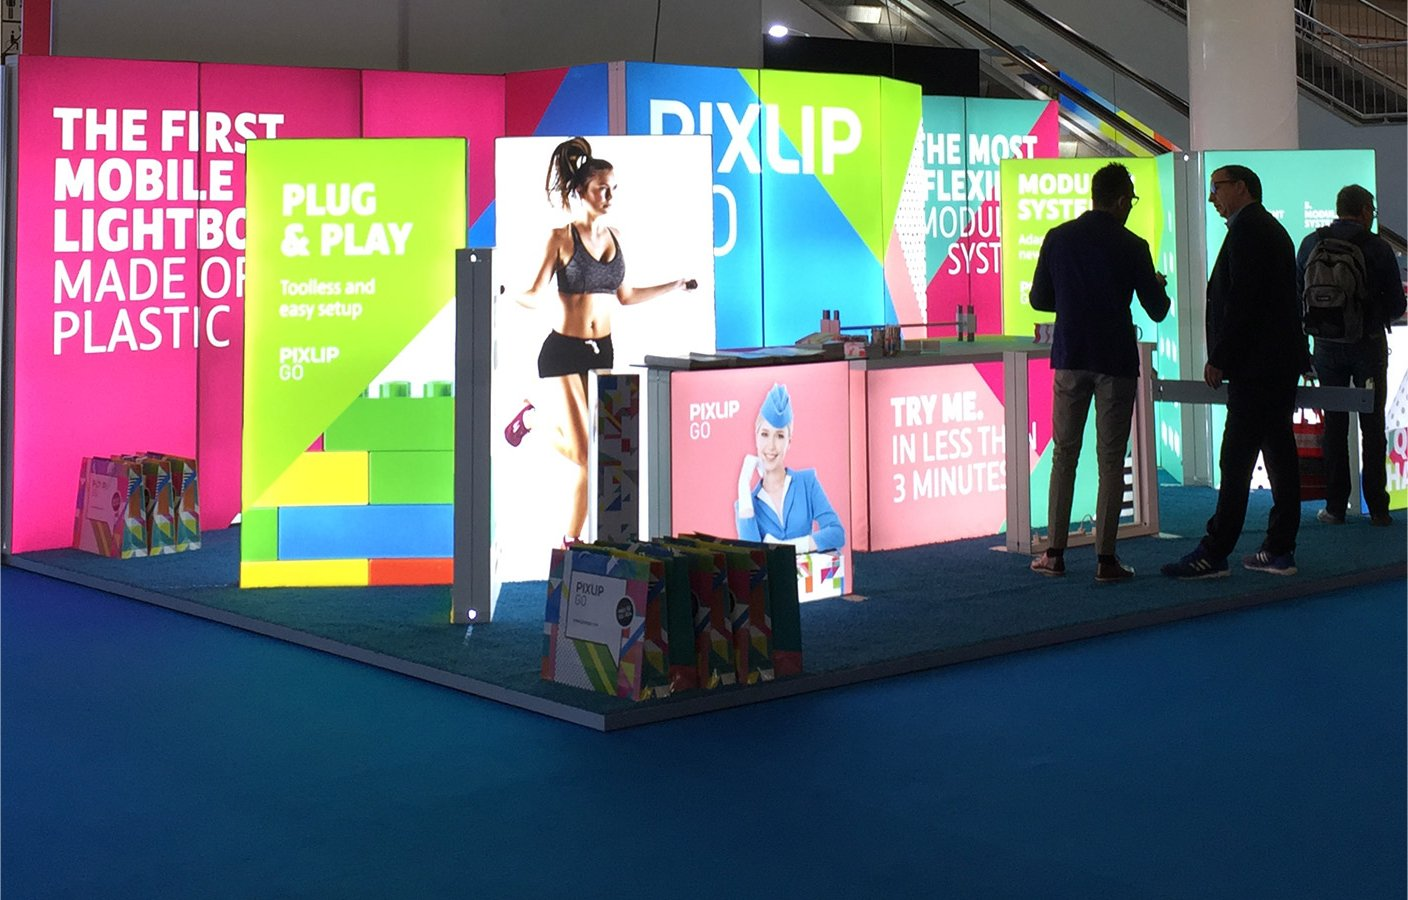 Pixlip Messestand